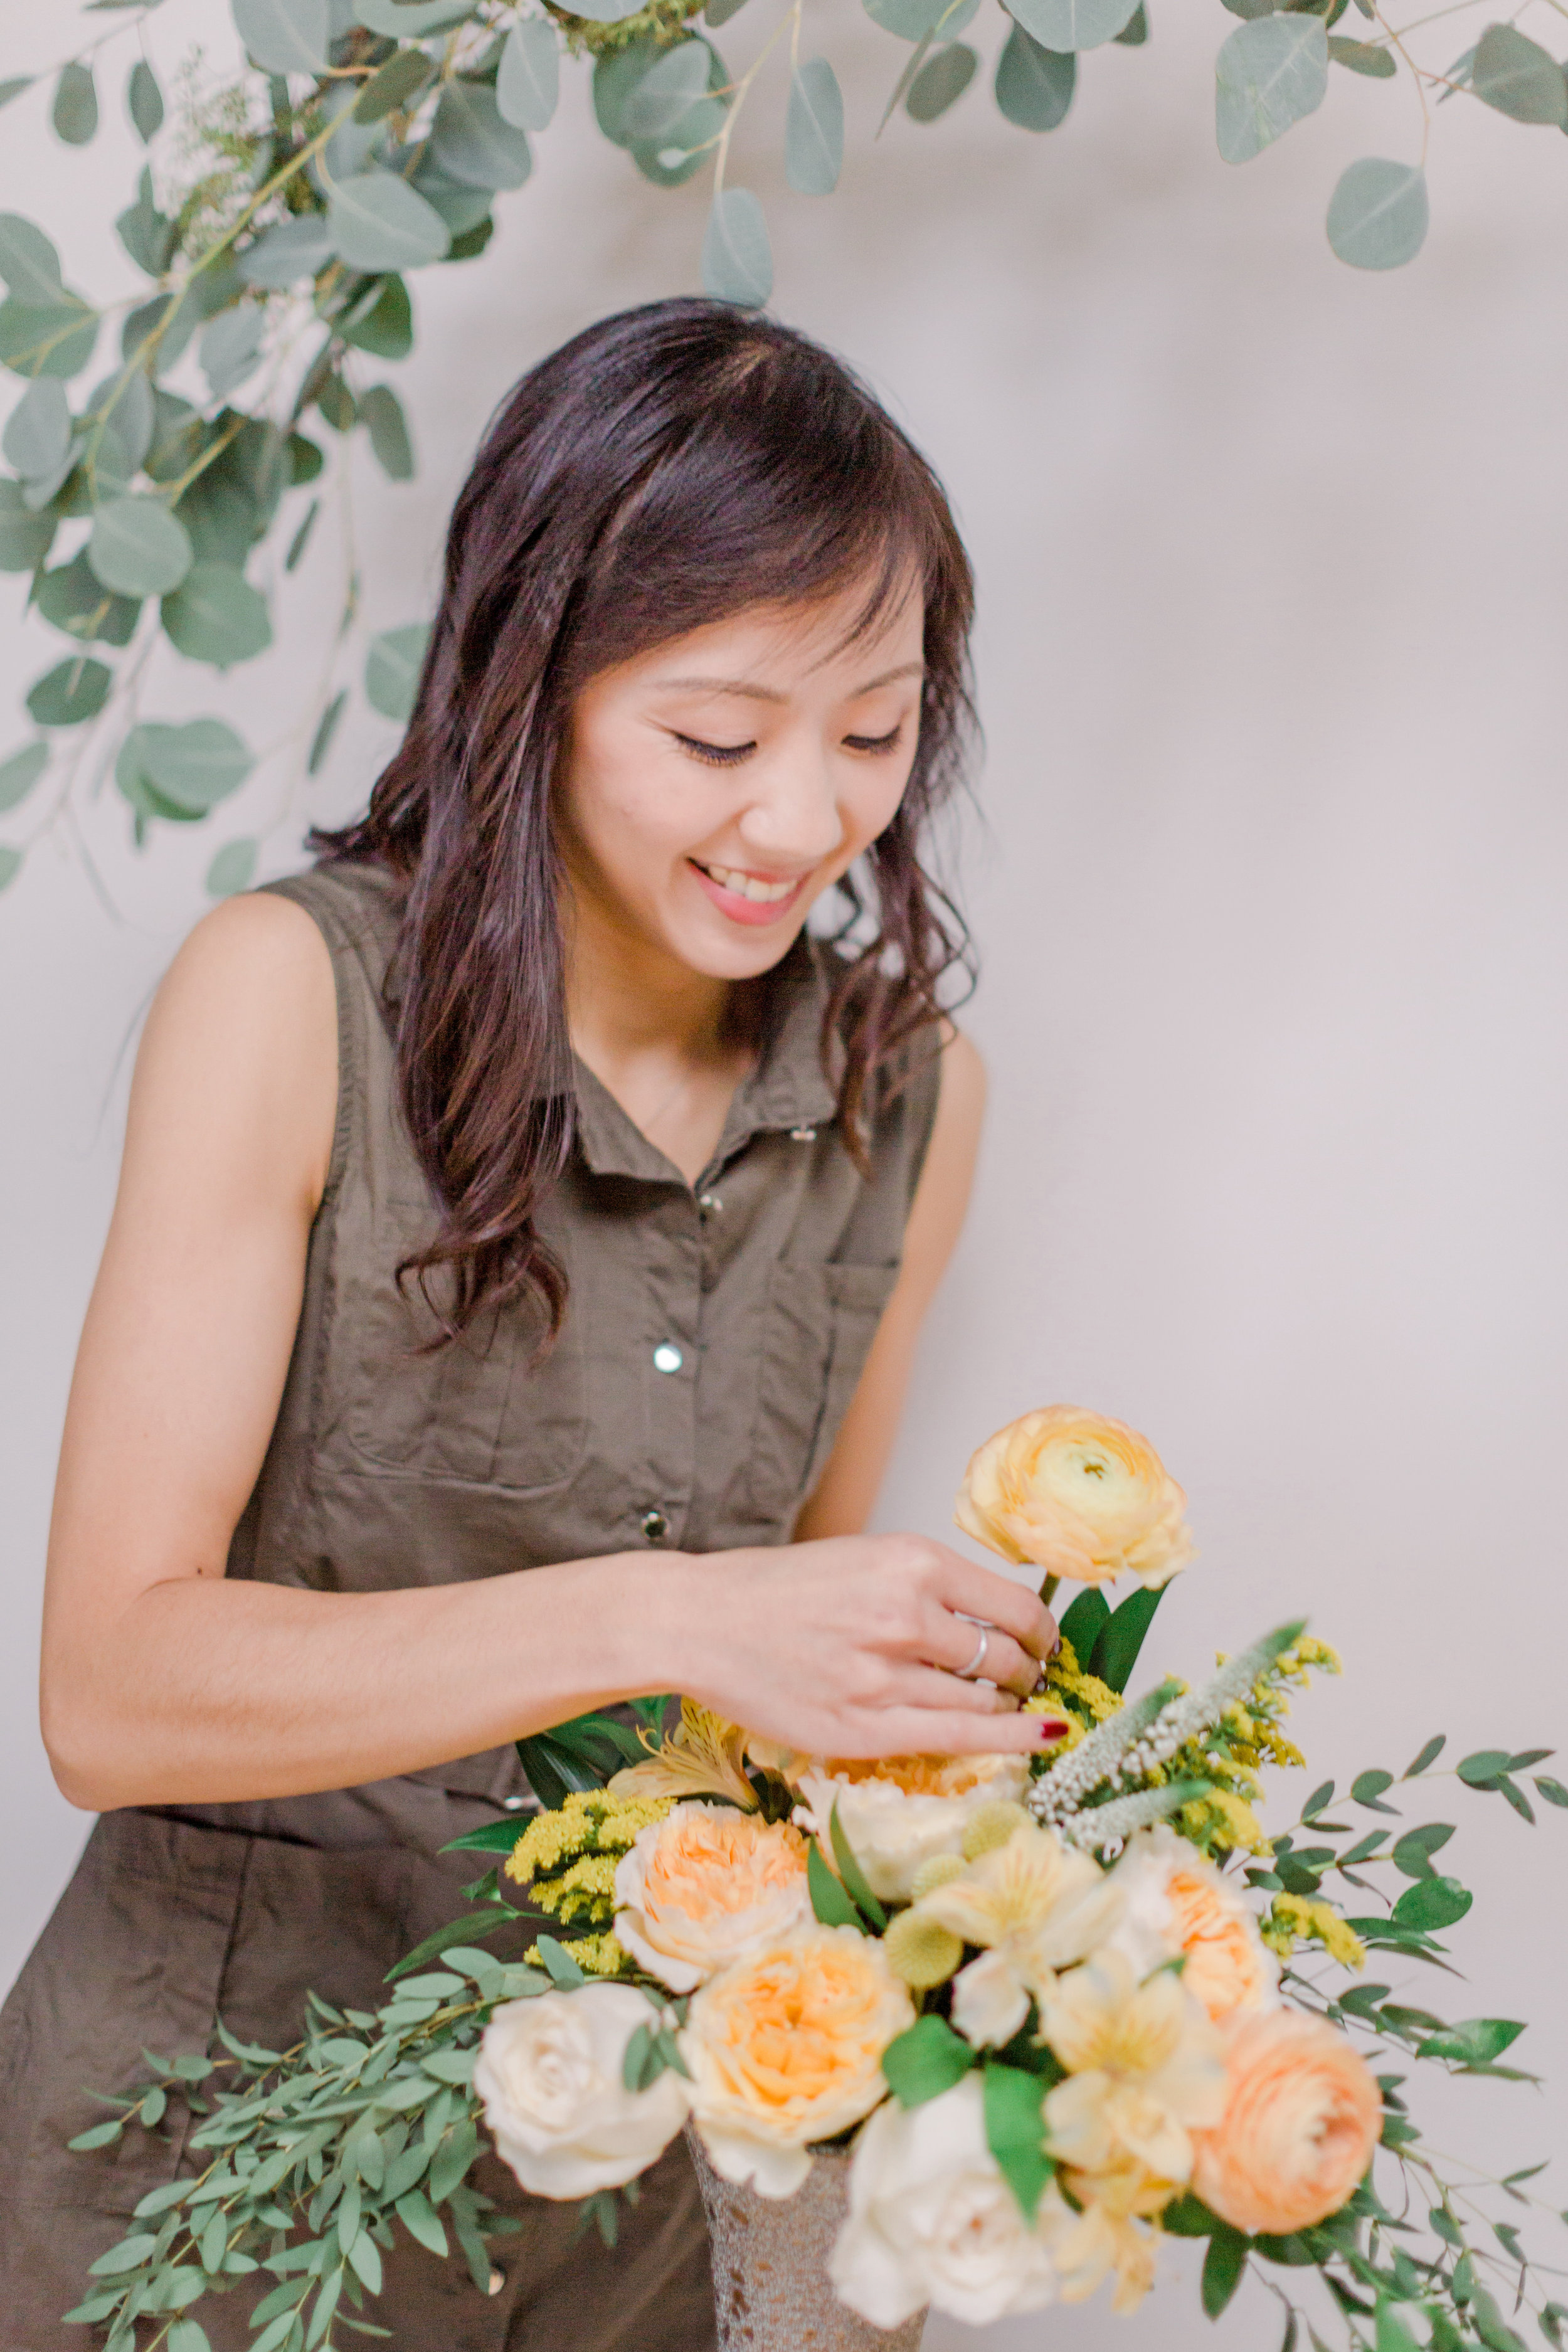 Montreal Award-winning Wedding Florist Flowers